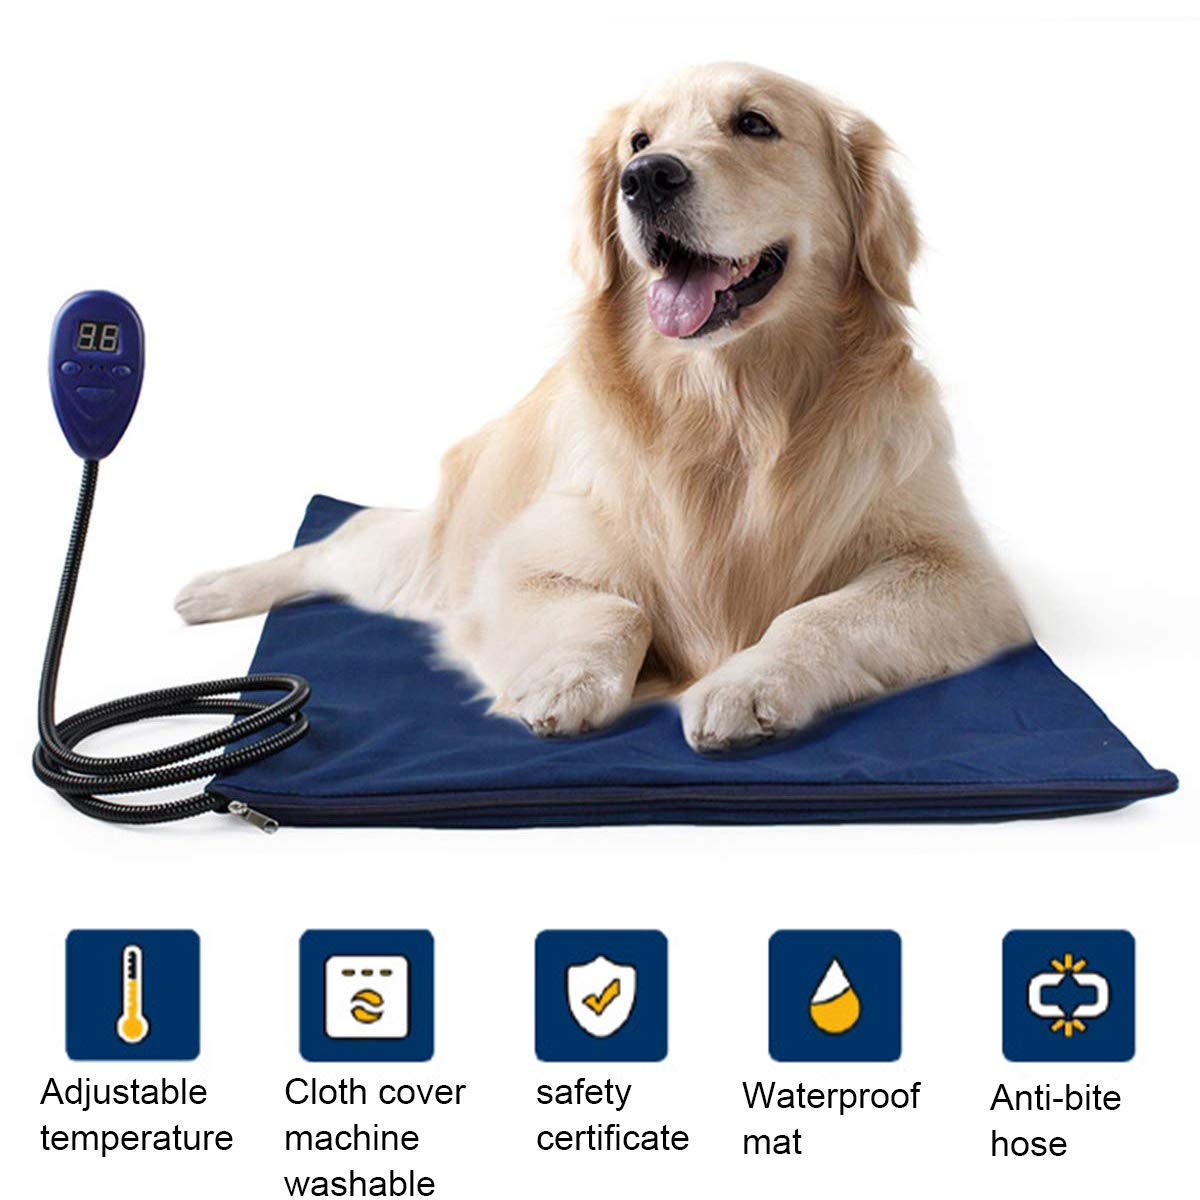 Nestling/® 65*40 CM 30W pet heating pad safe insulation pad removable and washable soft velvet fabric chewy steel wire adjustable temperature medium small large cat and dog constant heating